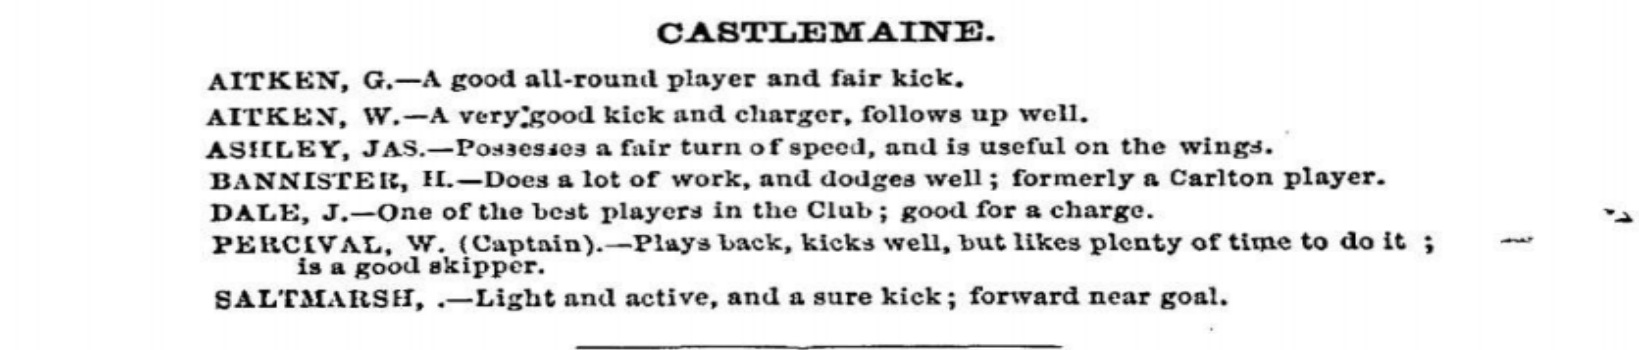 Castlemaine Football players 1875